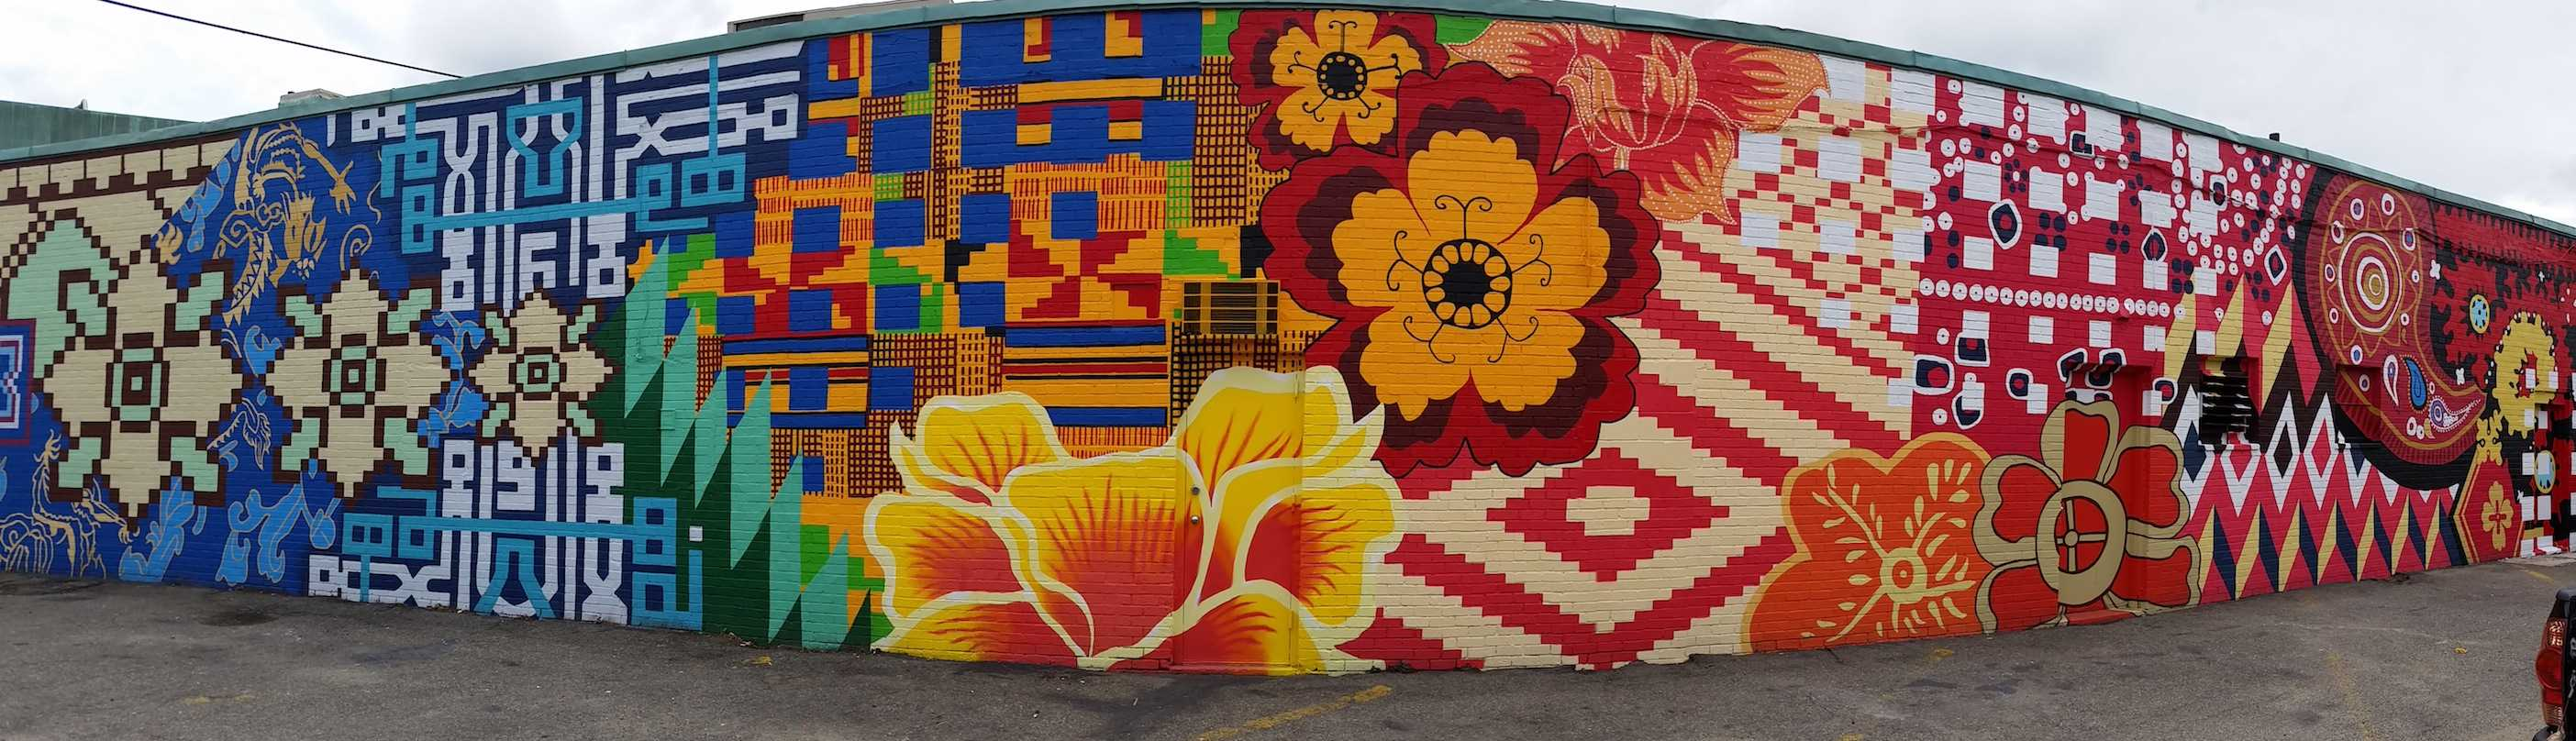 The completed mural,